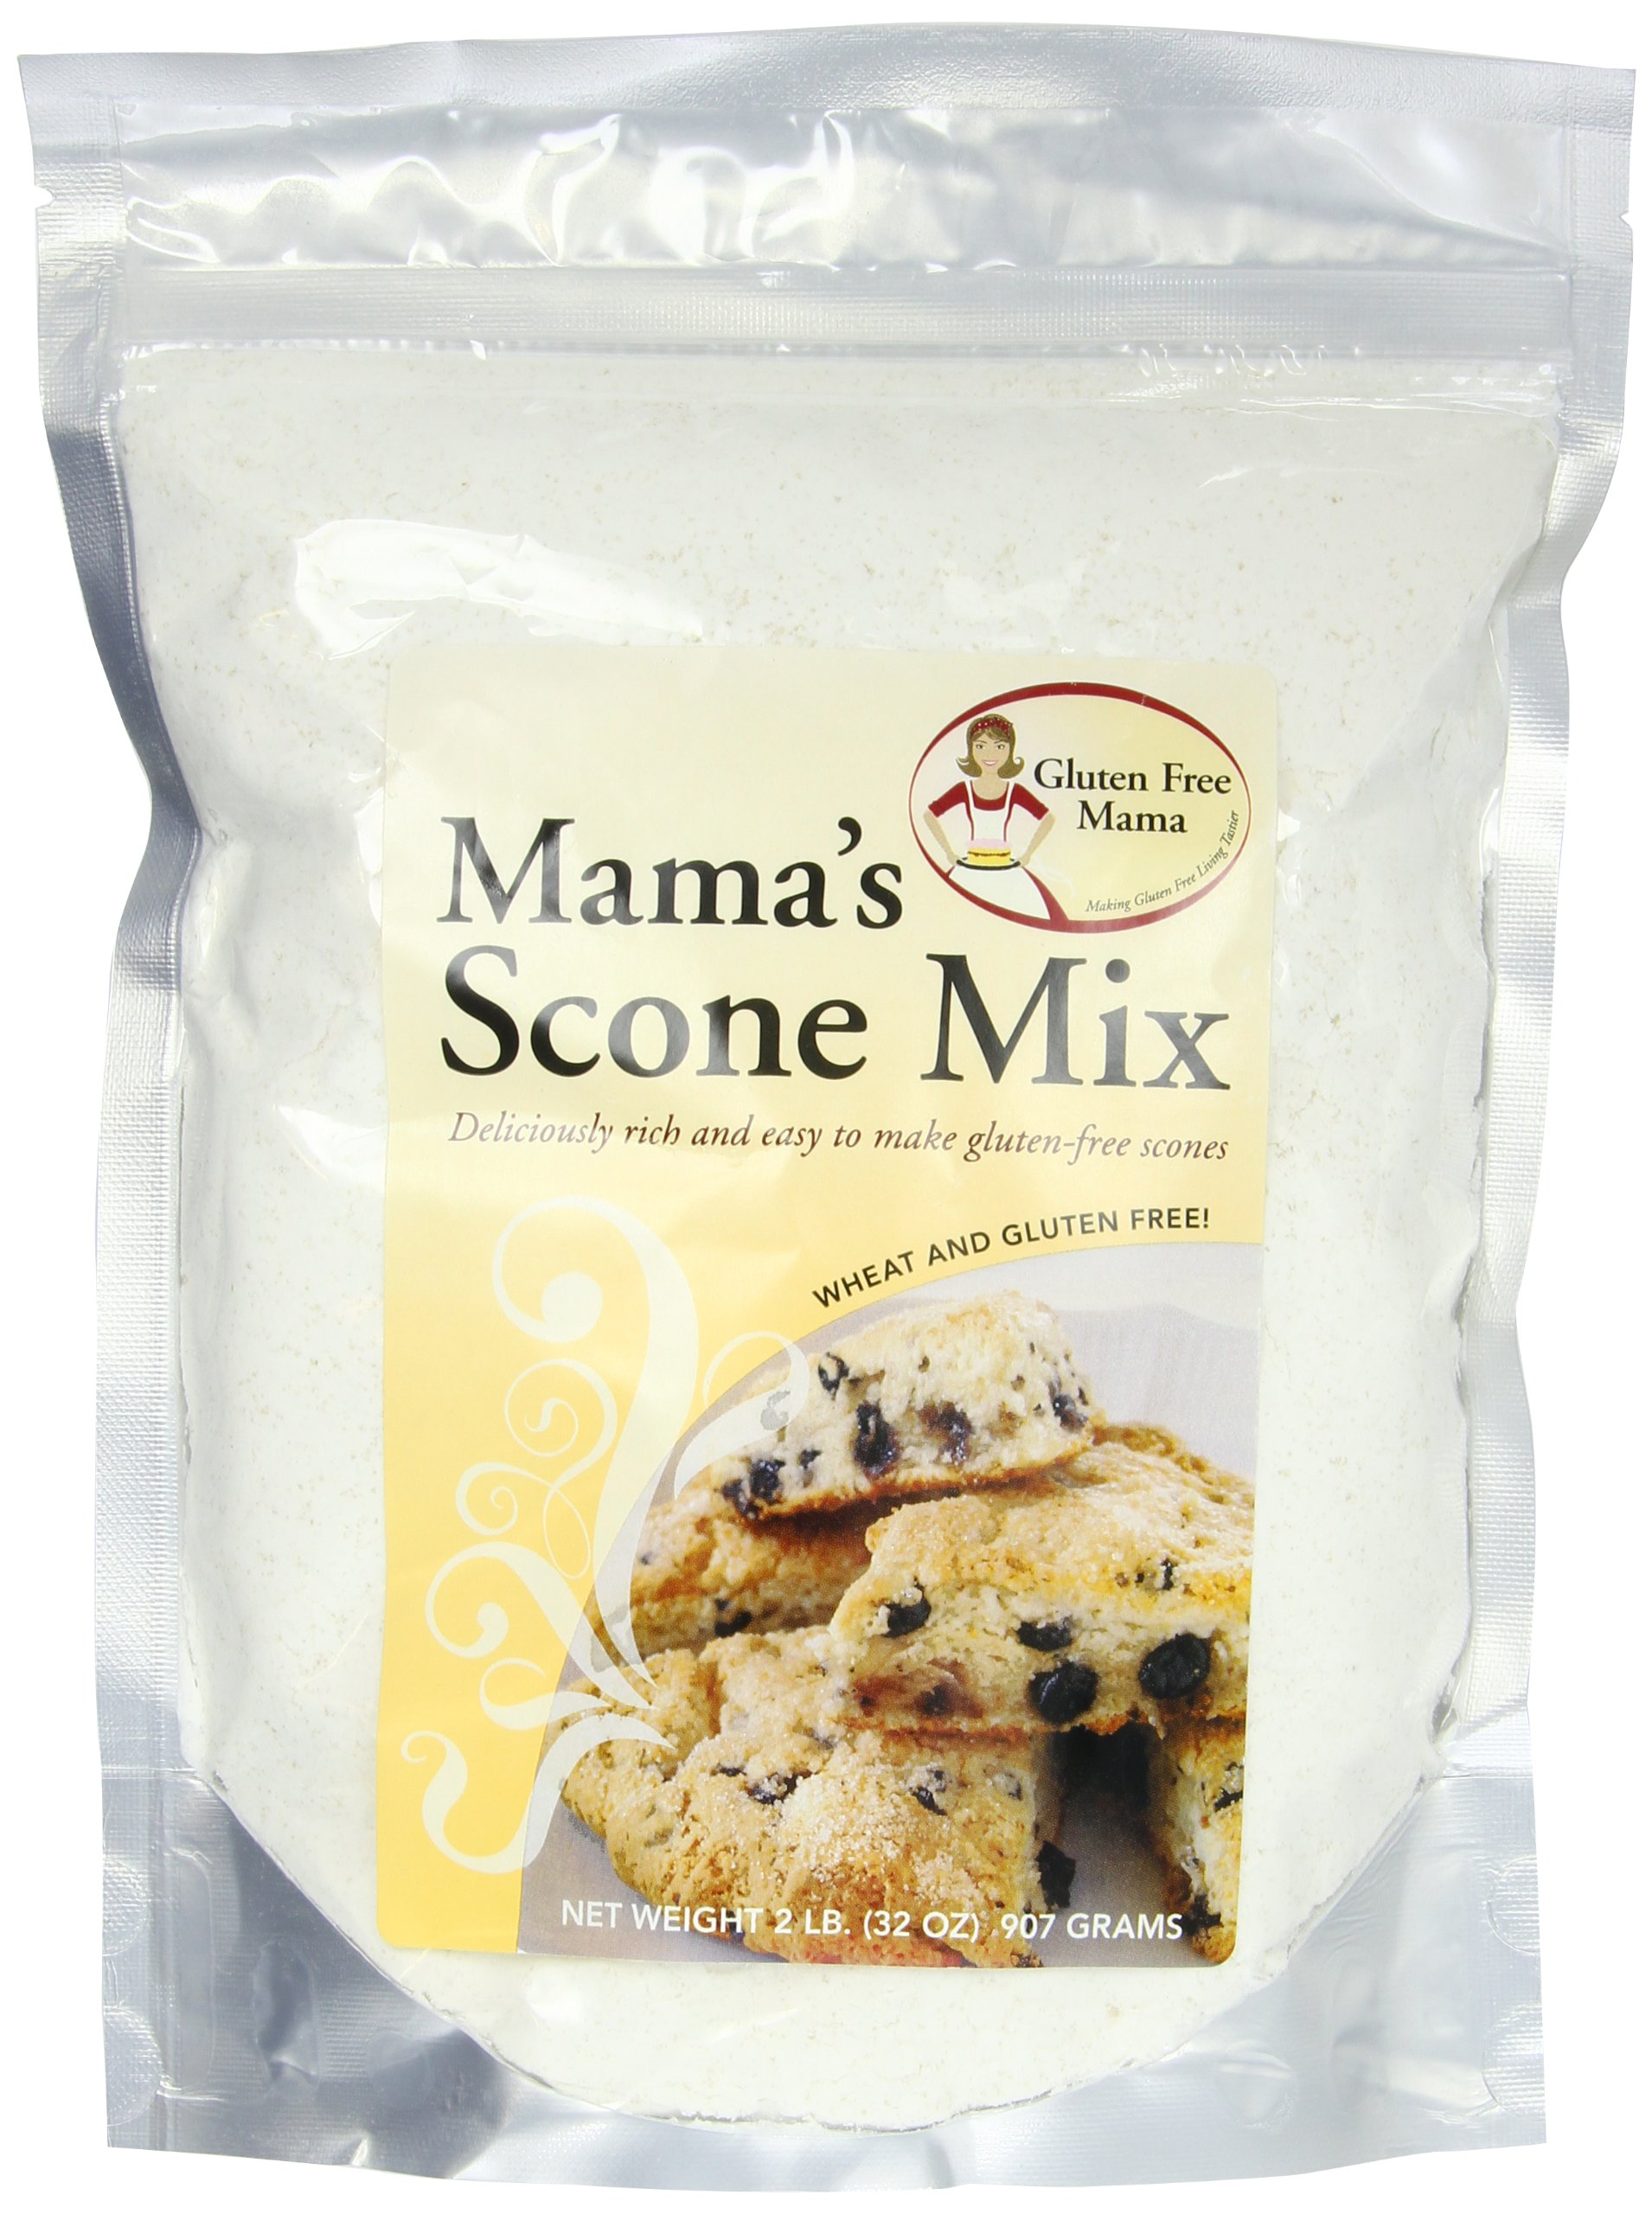 Gluten Free Mama, Mama's Scone Mix,  32 Ounce Pouch (Pack of 6)